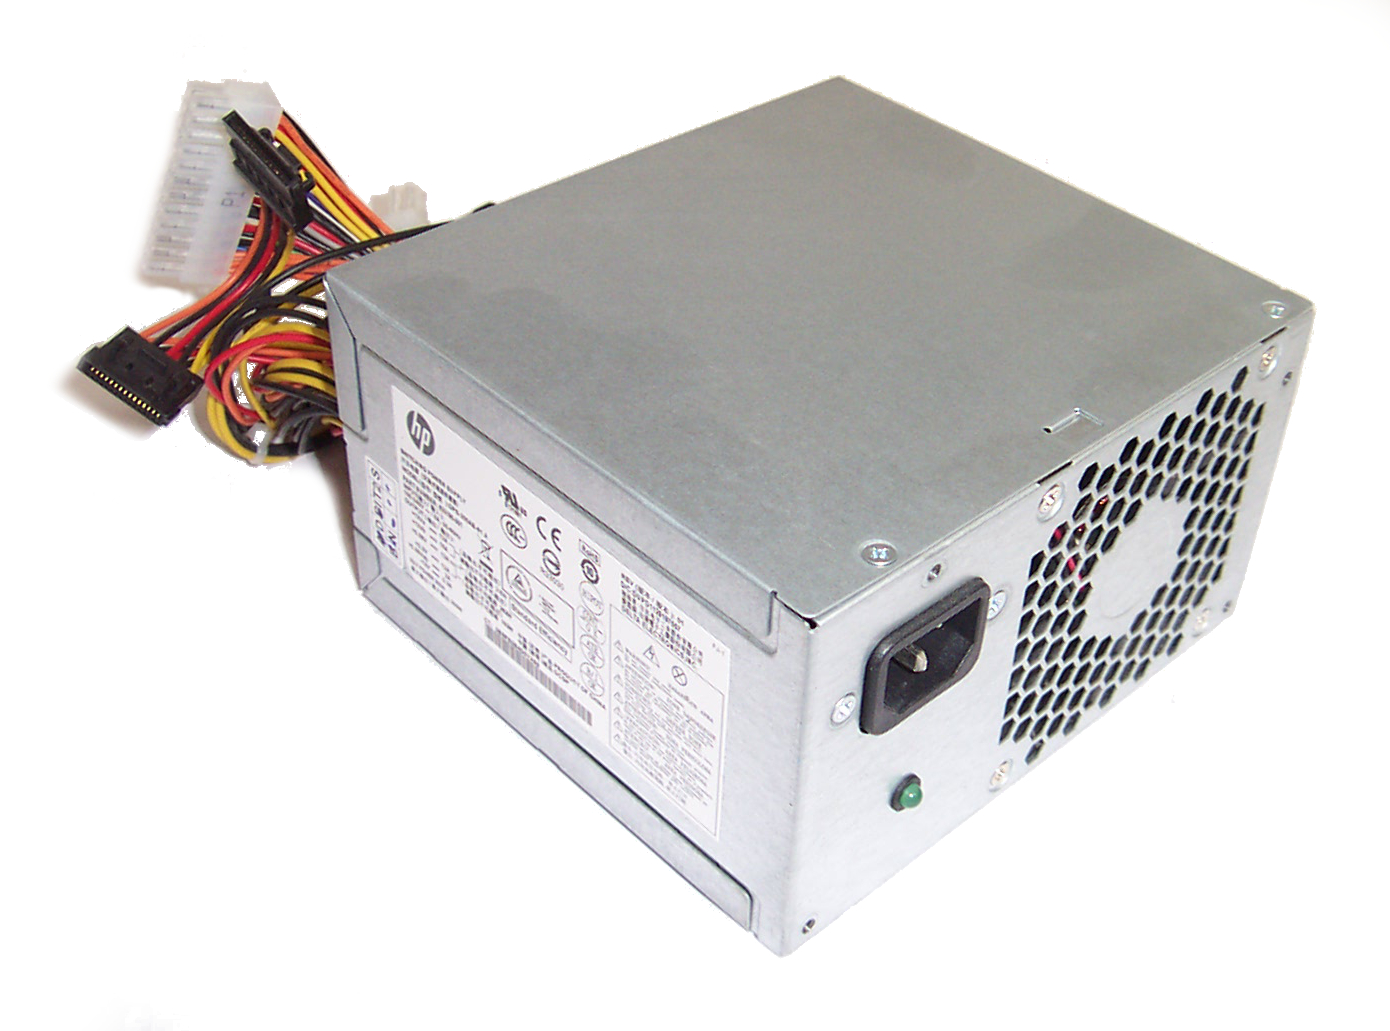 HP 633190-001 DPS-300AB-61 A 300W Switching Power Supply For Pro 3400 MT PC